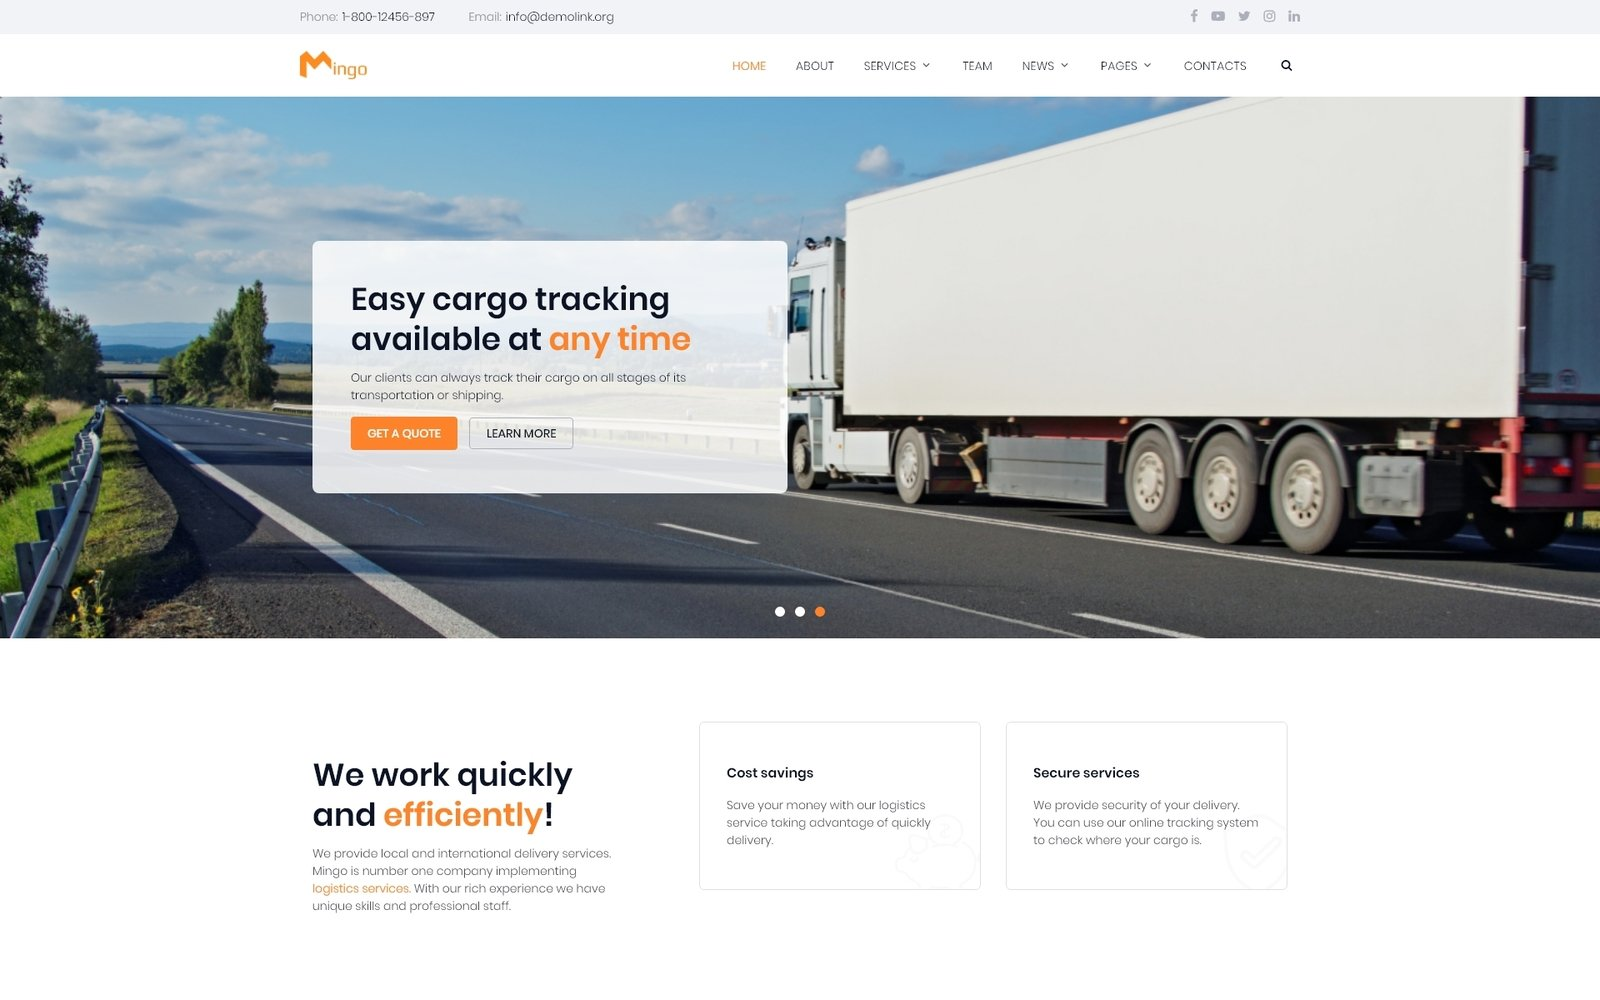 Mingo - Delivery Services Multipage Clean HTML №80995 - скриншот